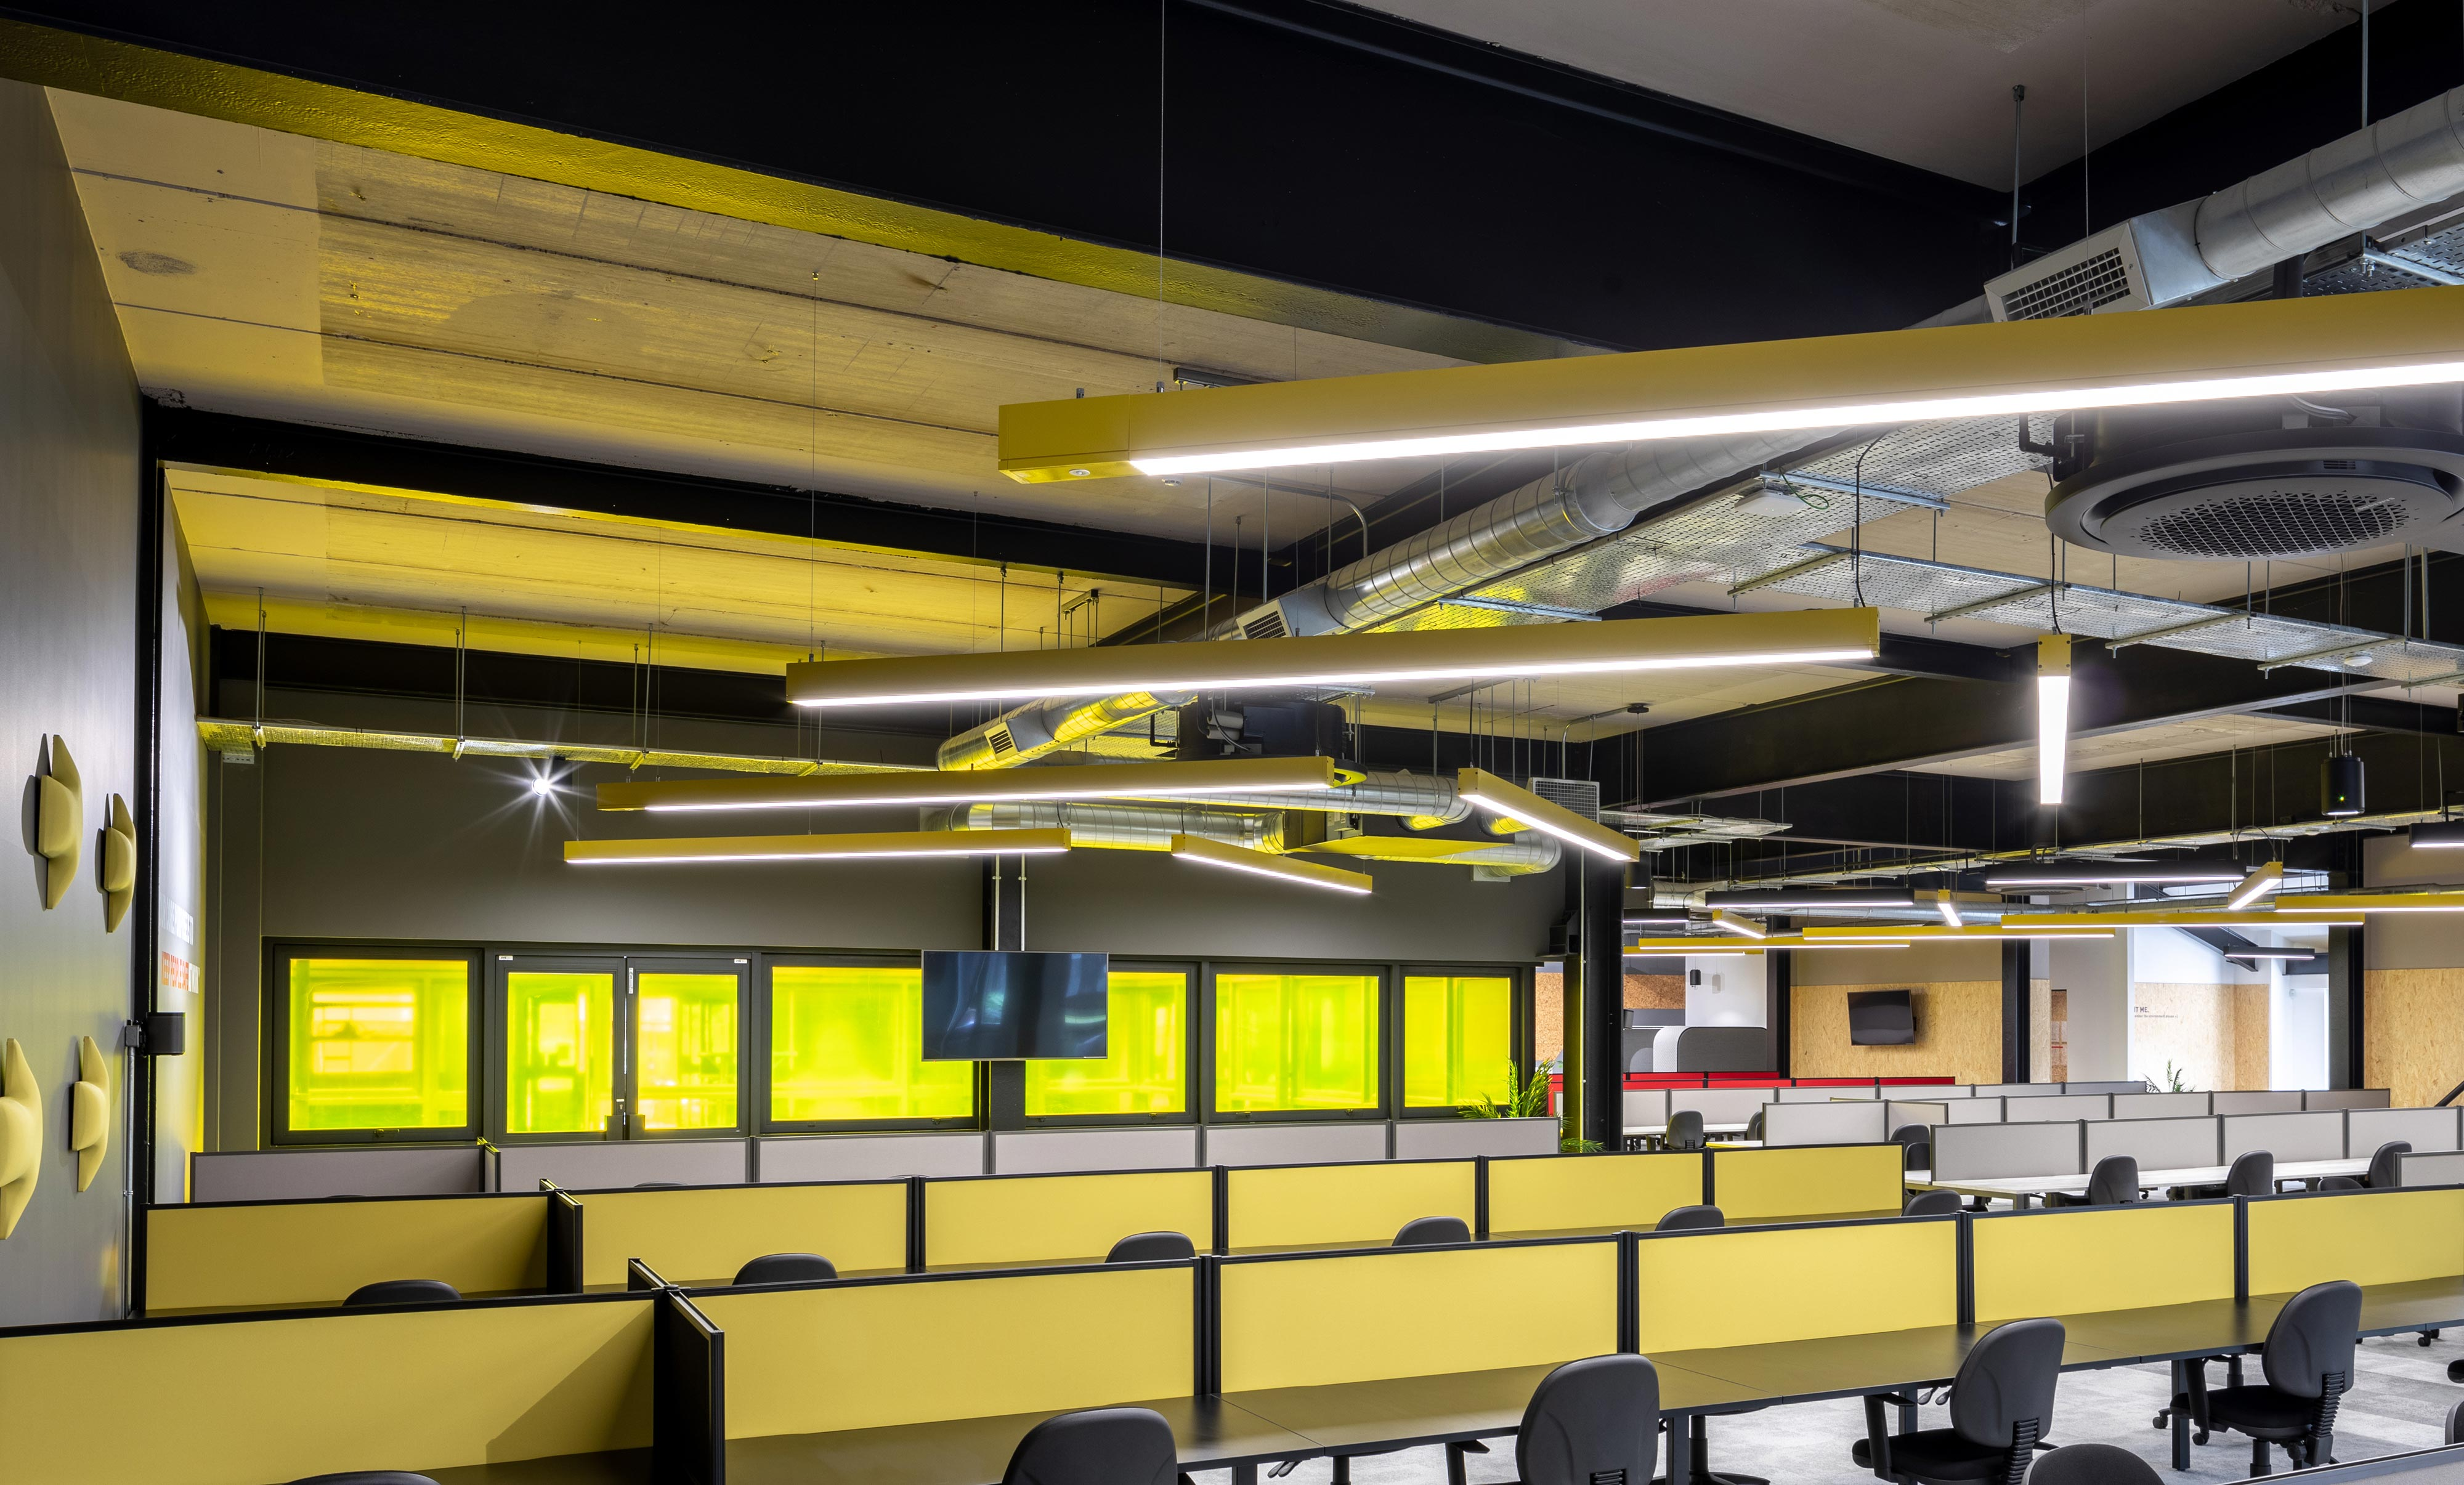 hull business centres, hull business centre, commercial property hull